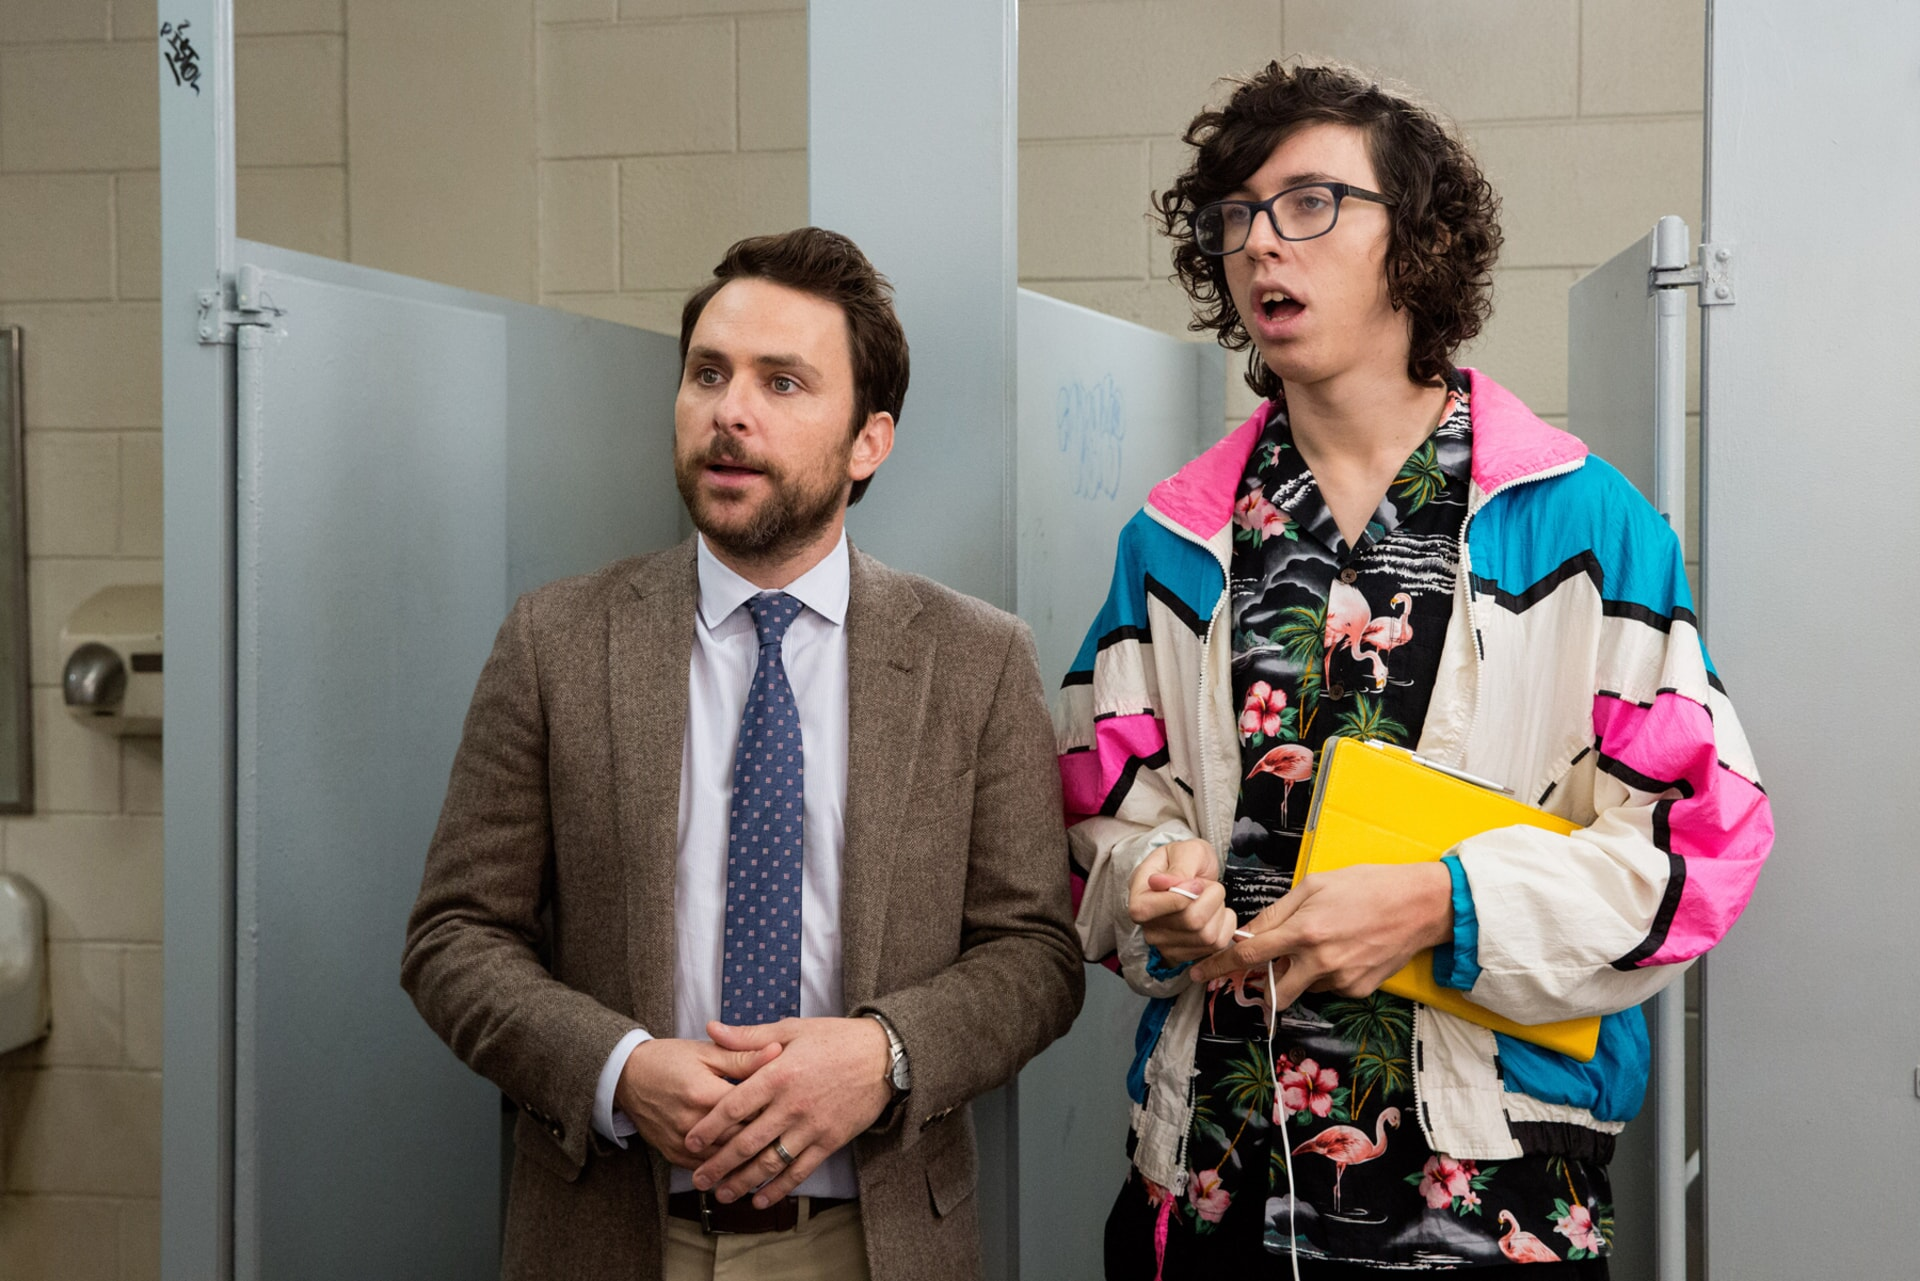 """CHARLIE DAY as Andy Campbell and BILL KOTTKAMP as William in the New Line Cinema and Village Roadshow Pictures comedy """"FIST FIGHT,"""" a Warner Bros. Pictures release."""